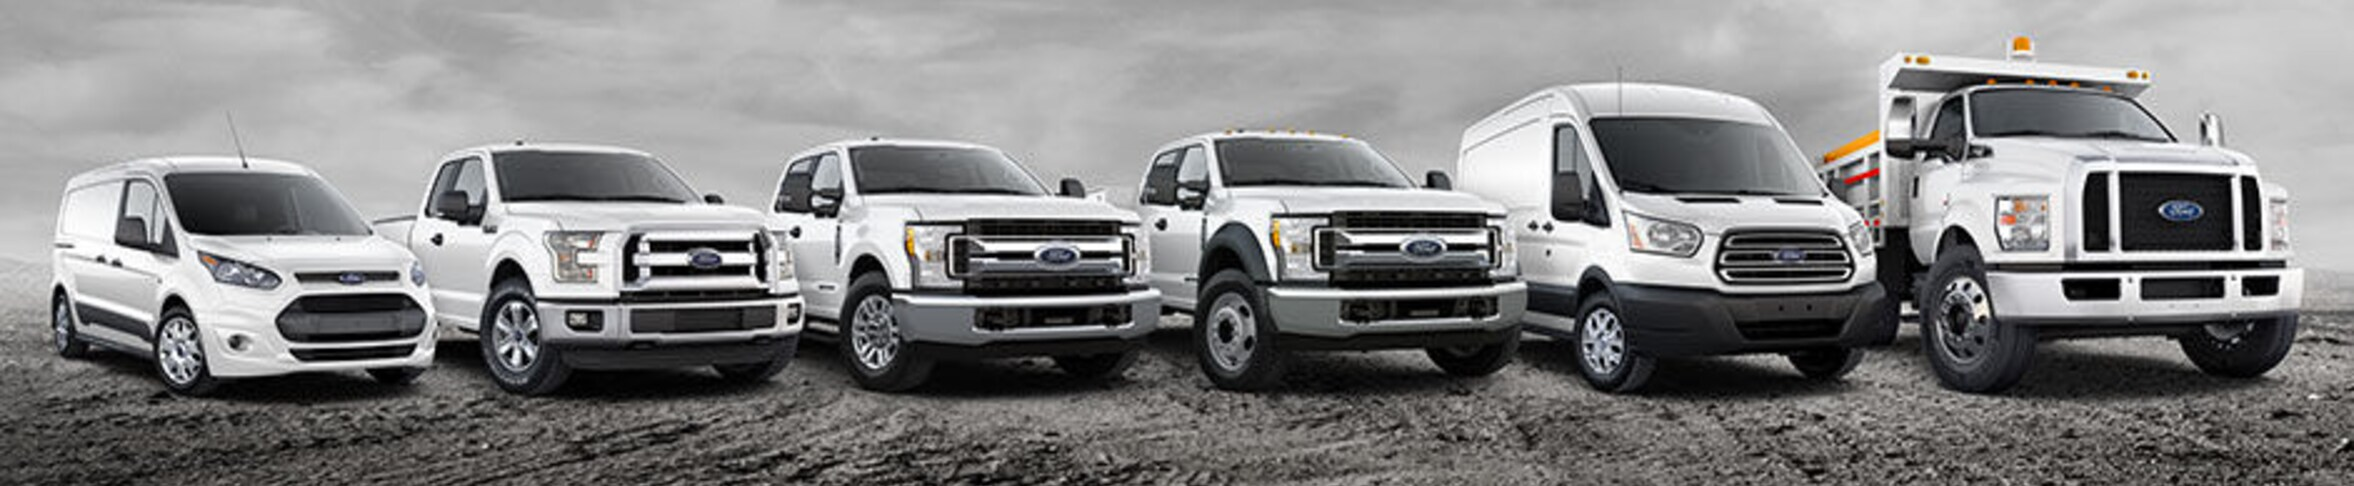 Commercial Ford Vehicles